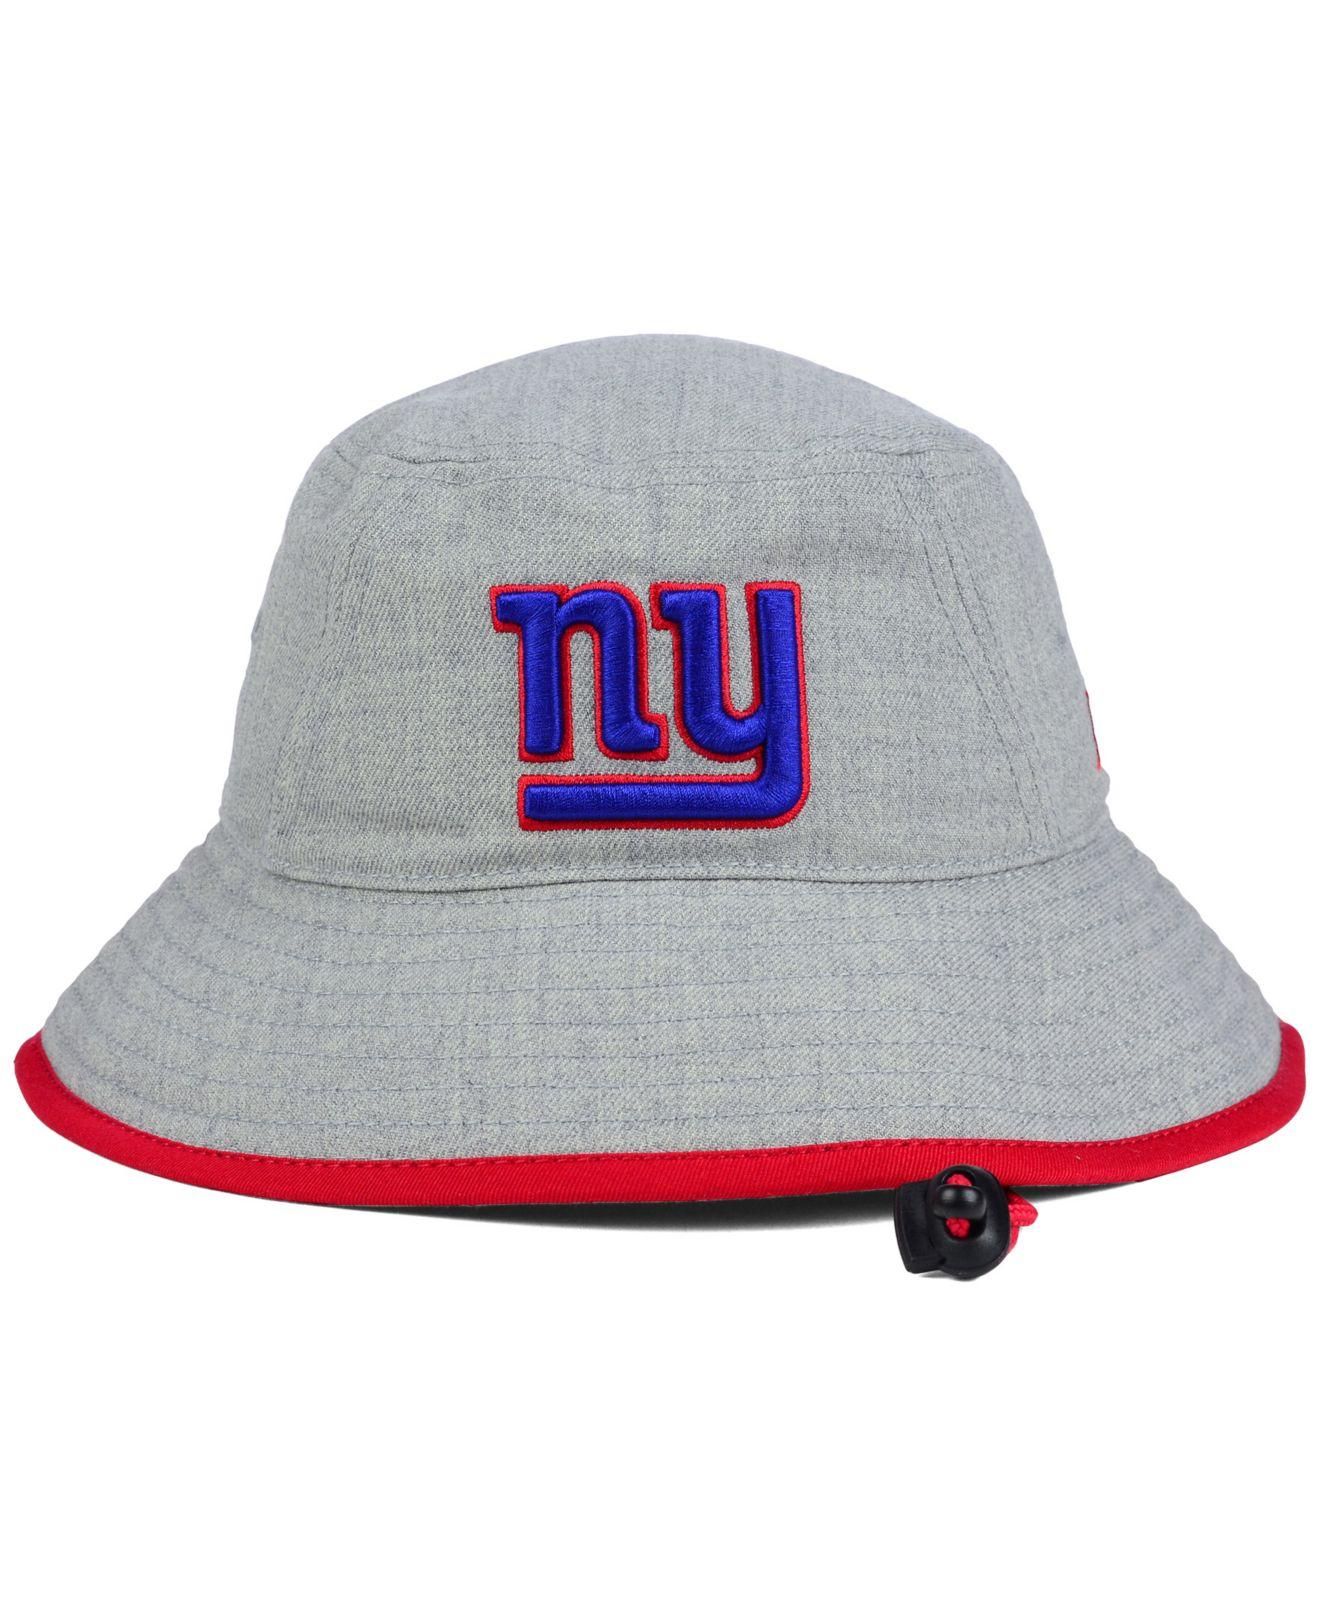 749a2fe3d0c32a ... purchase lyst ktz new york giants nfl heather gray bucket hat in gray  5d1f1 8f530 ...